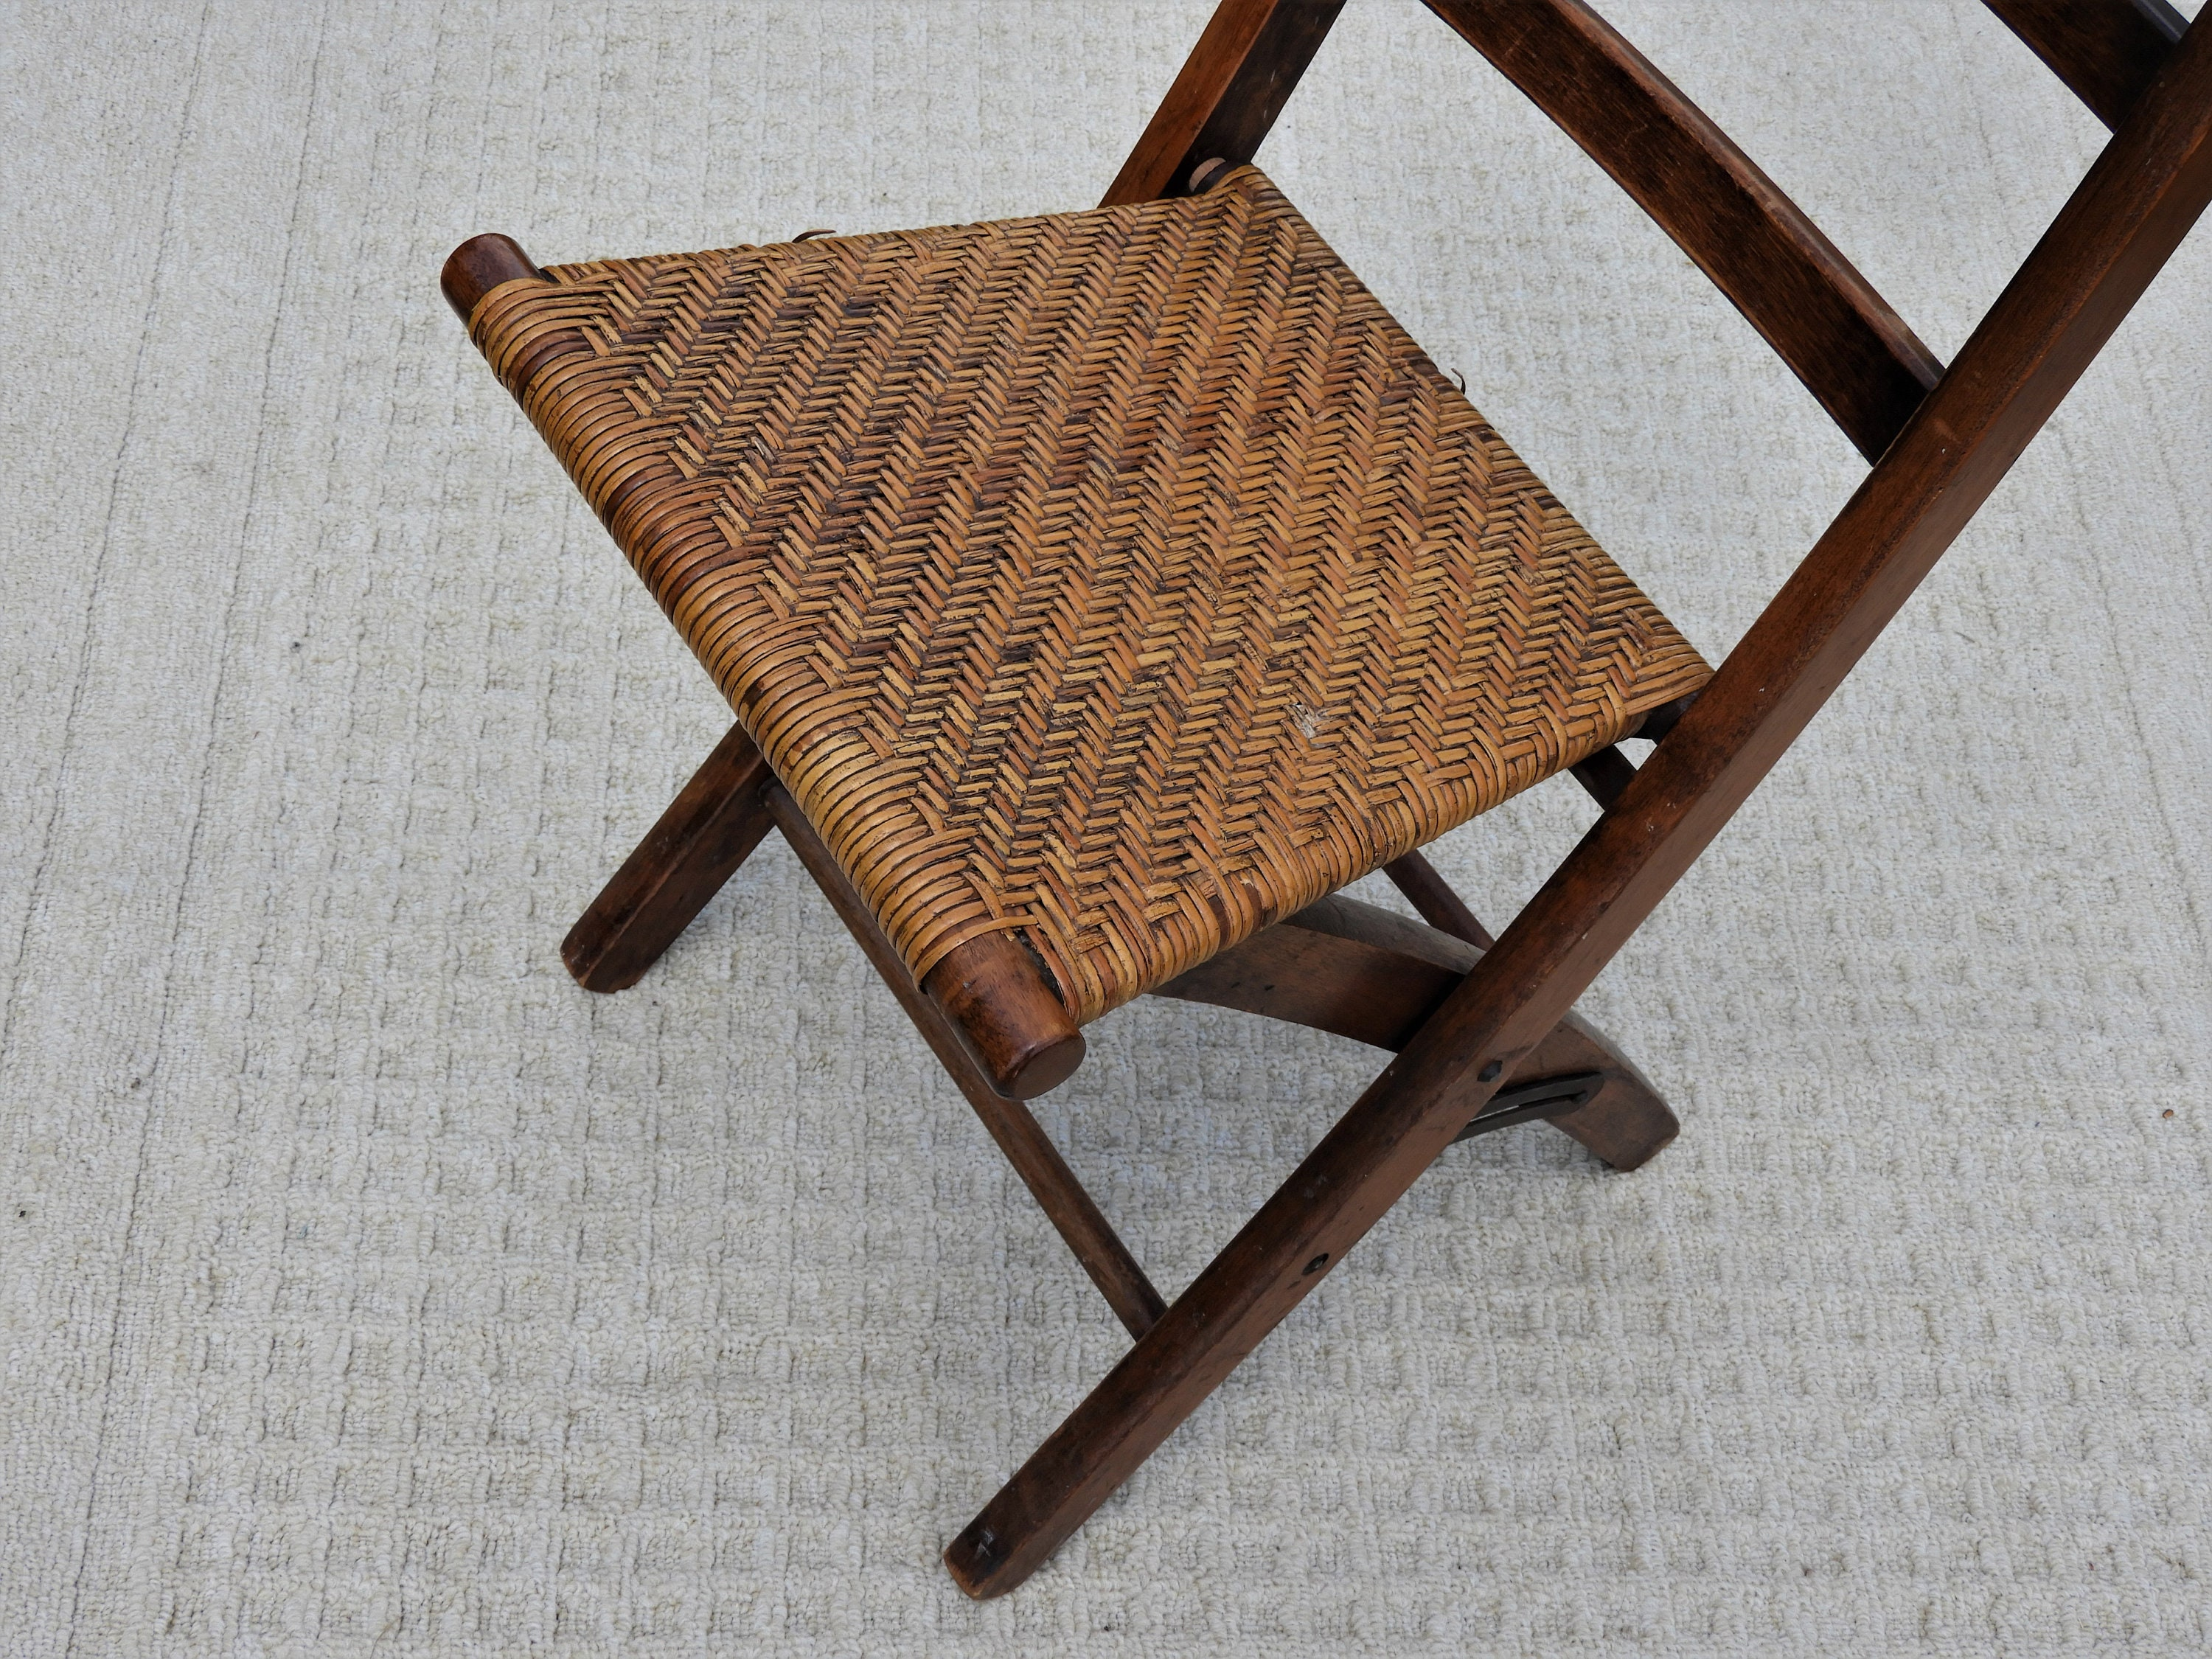 Vintage Bentwood Chair Ladder Back Folding Chair Woven